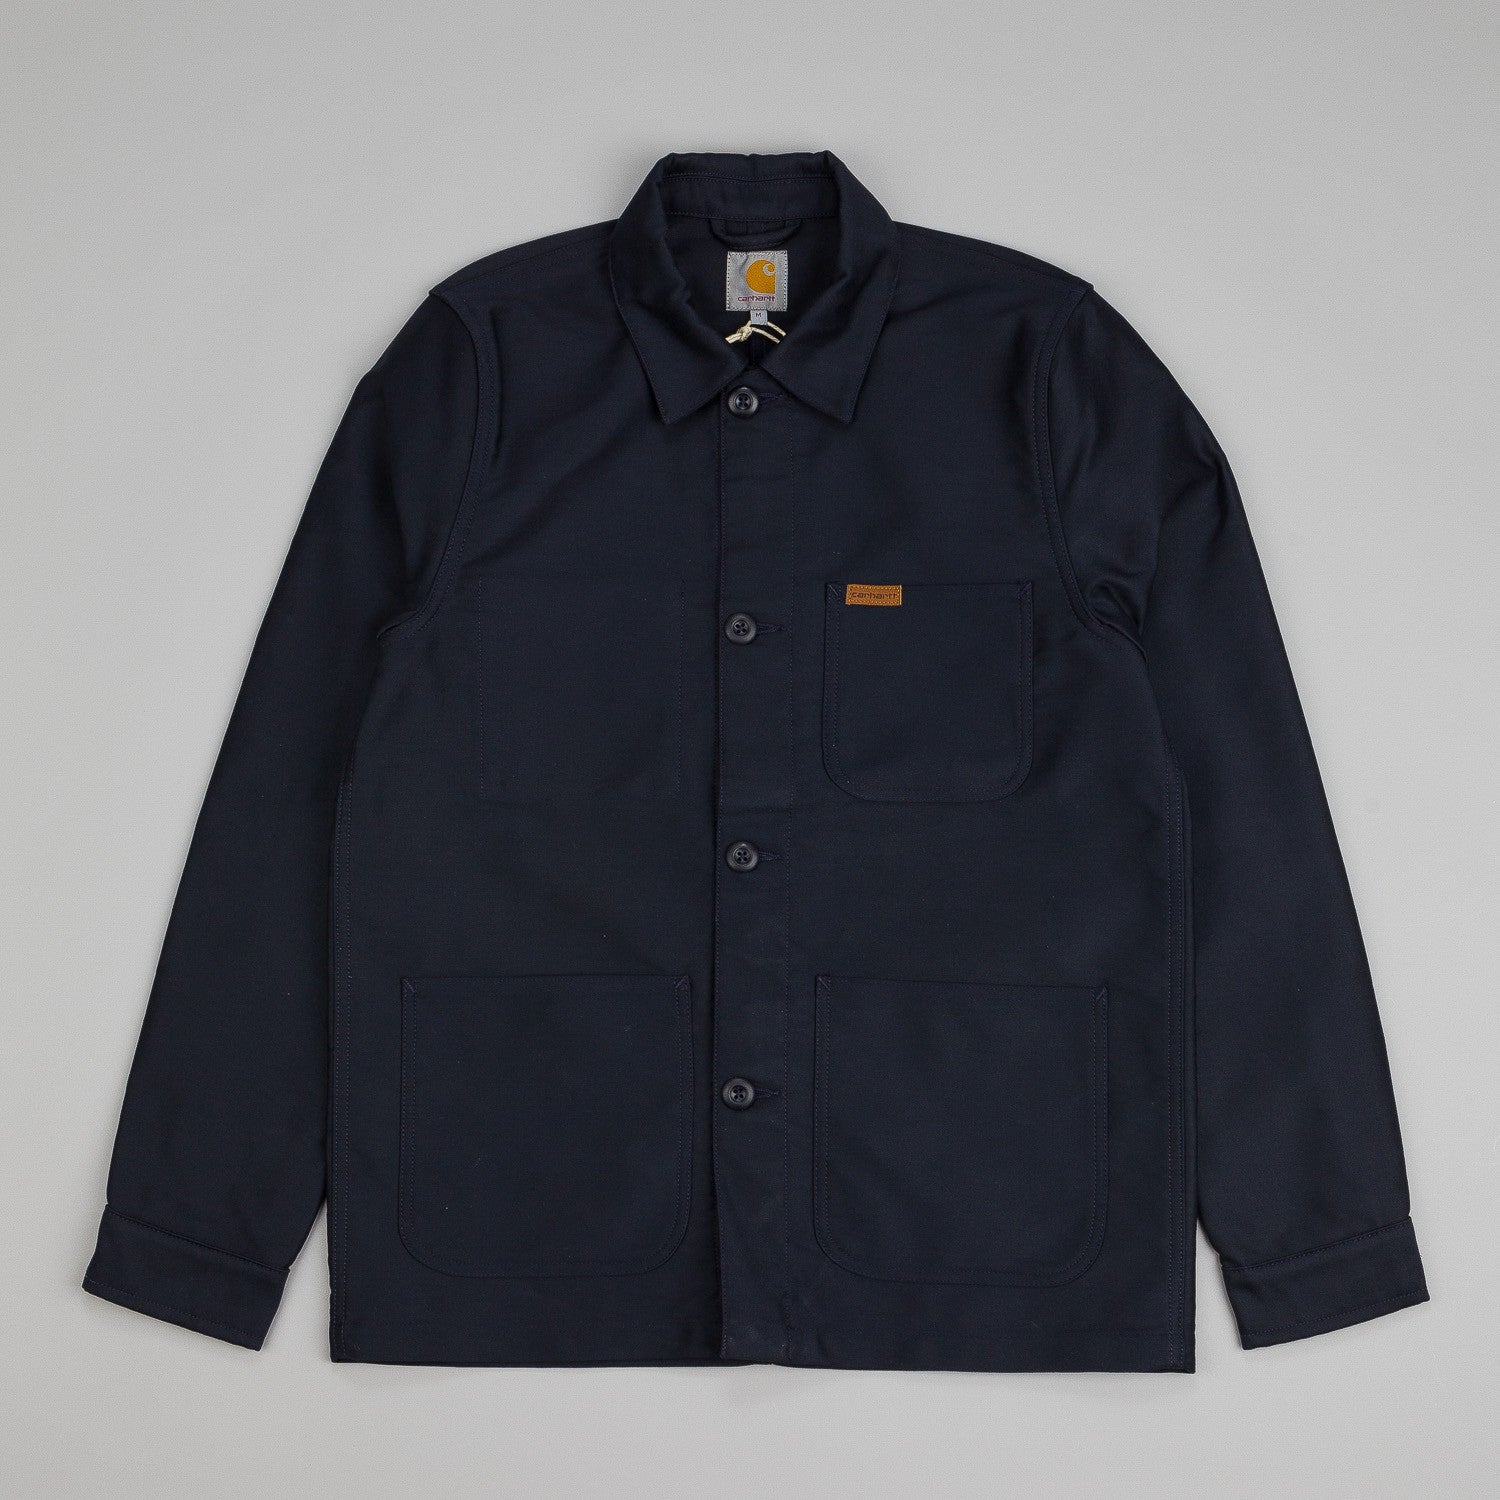 Carhartt Fynn Jacket Jet Rigid